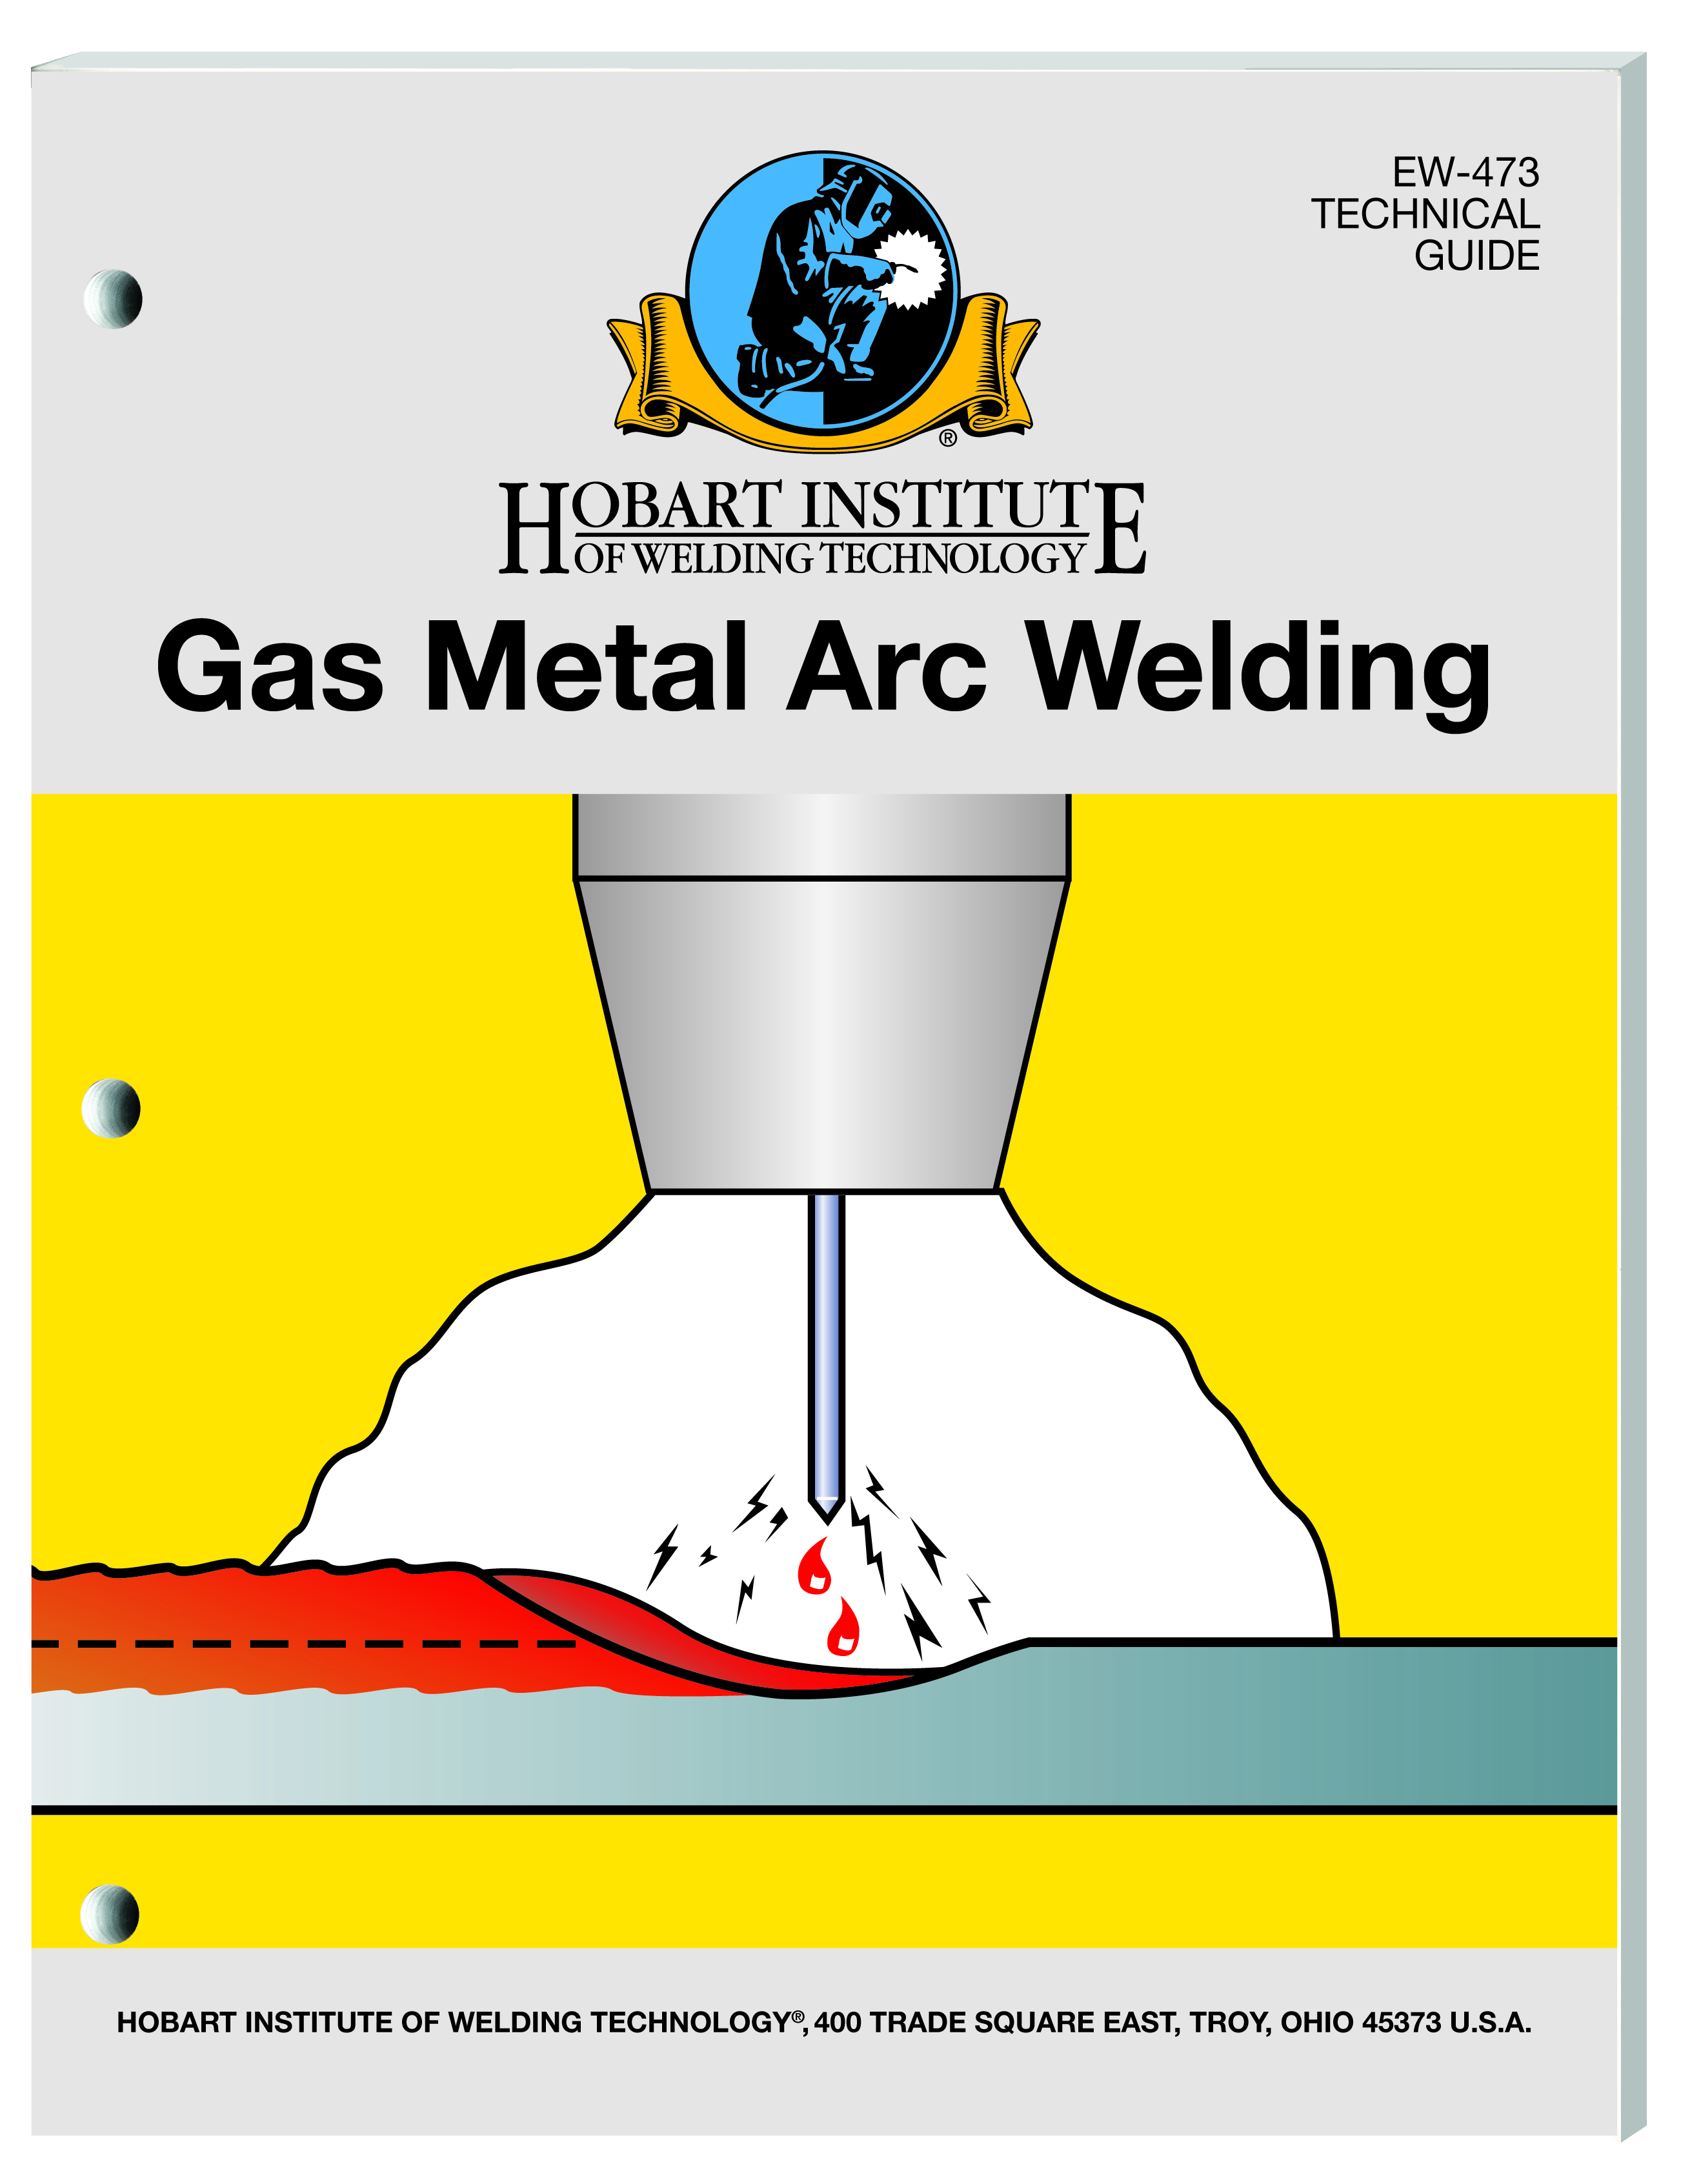 Gas metal arc welding hobart institute of welding technology gas metal arc welding malvernweather Image collections